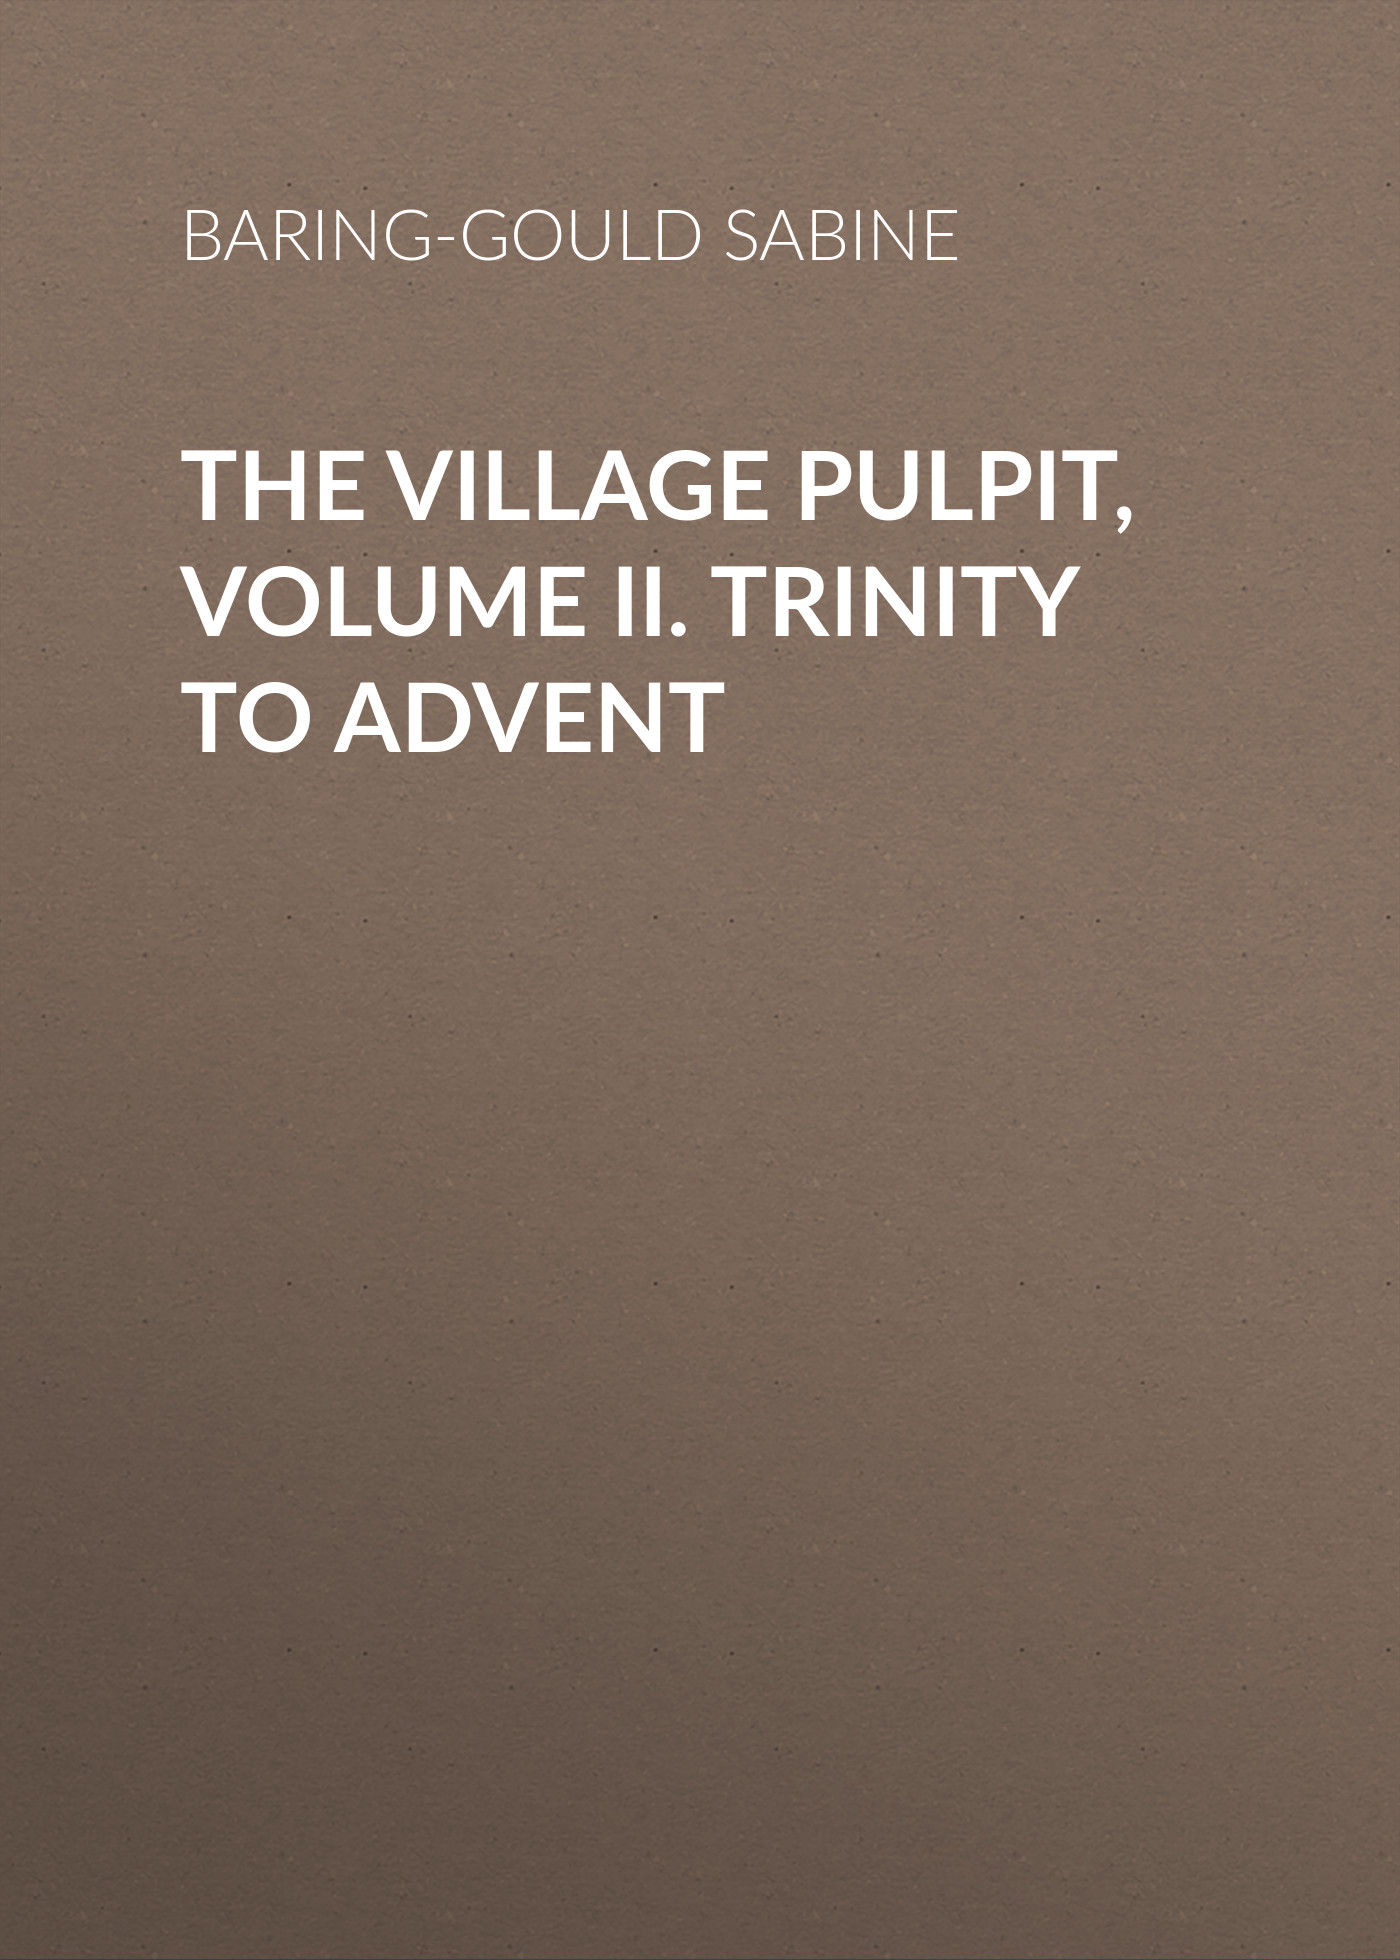 цена на Baring-Gould Sabine The Village Pulpit, Volume II. Trinity to Advent